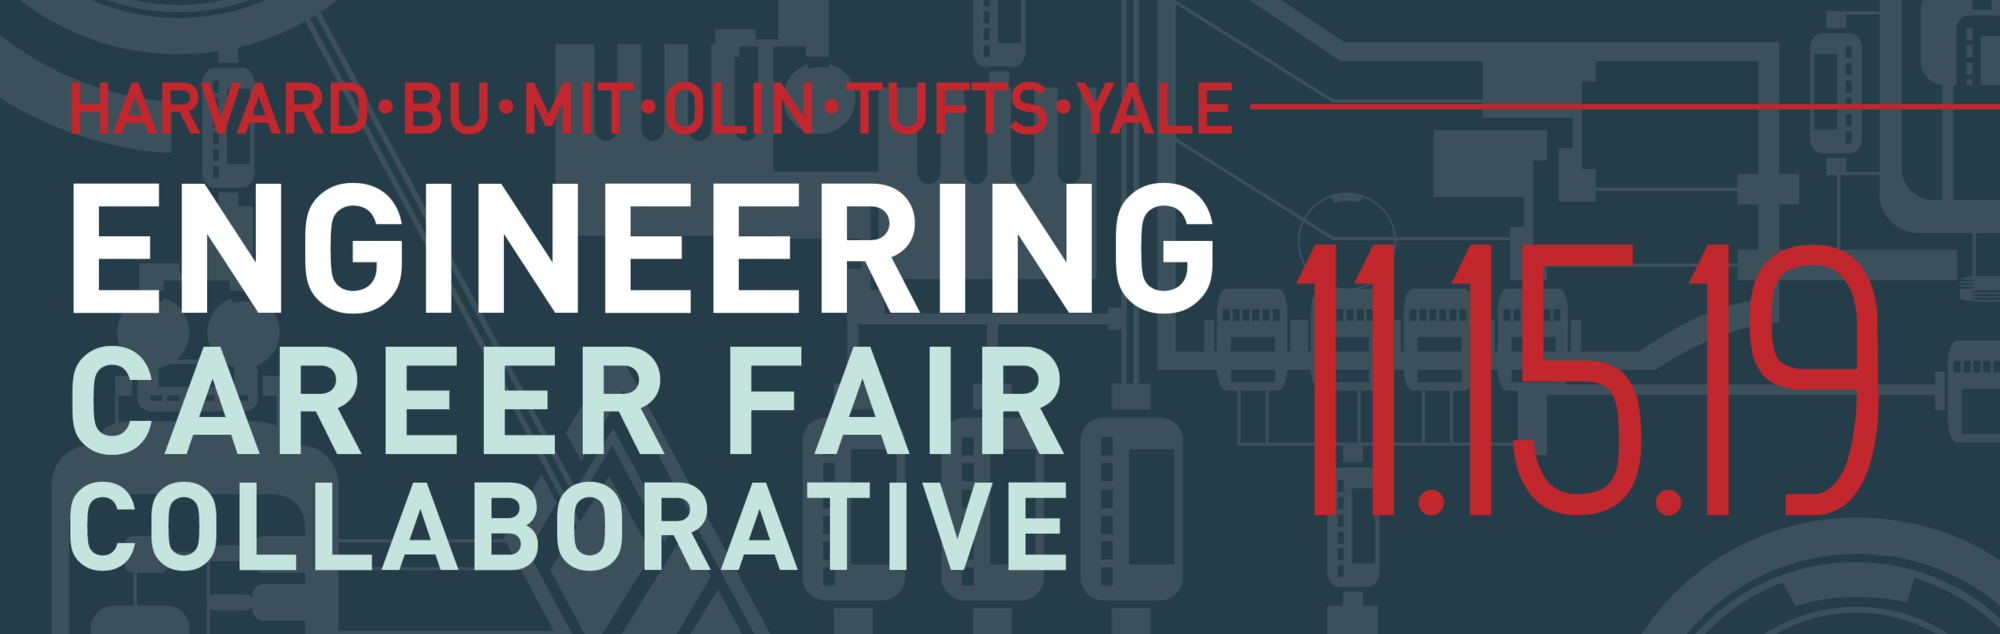 engineering career fair collaborative